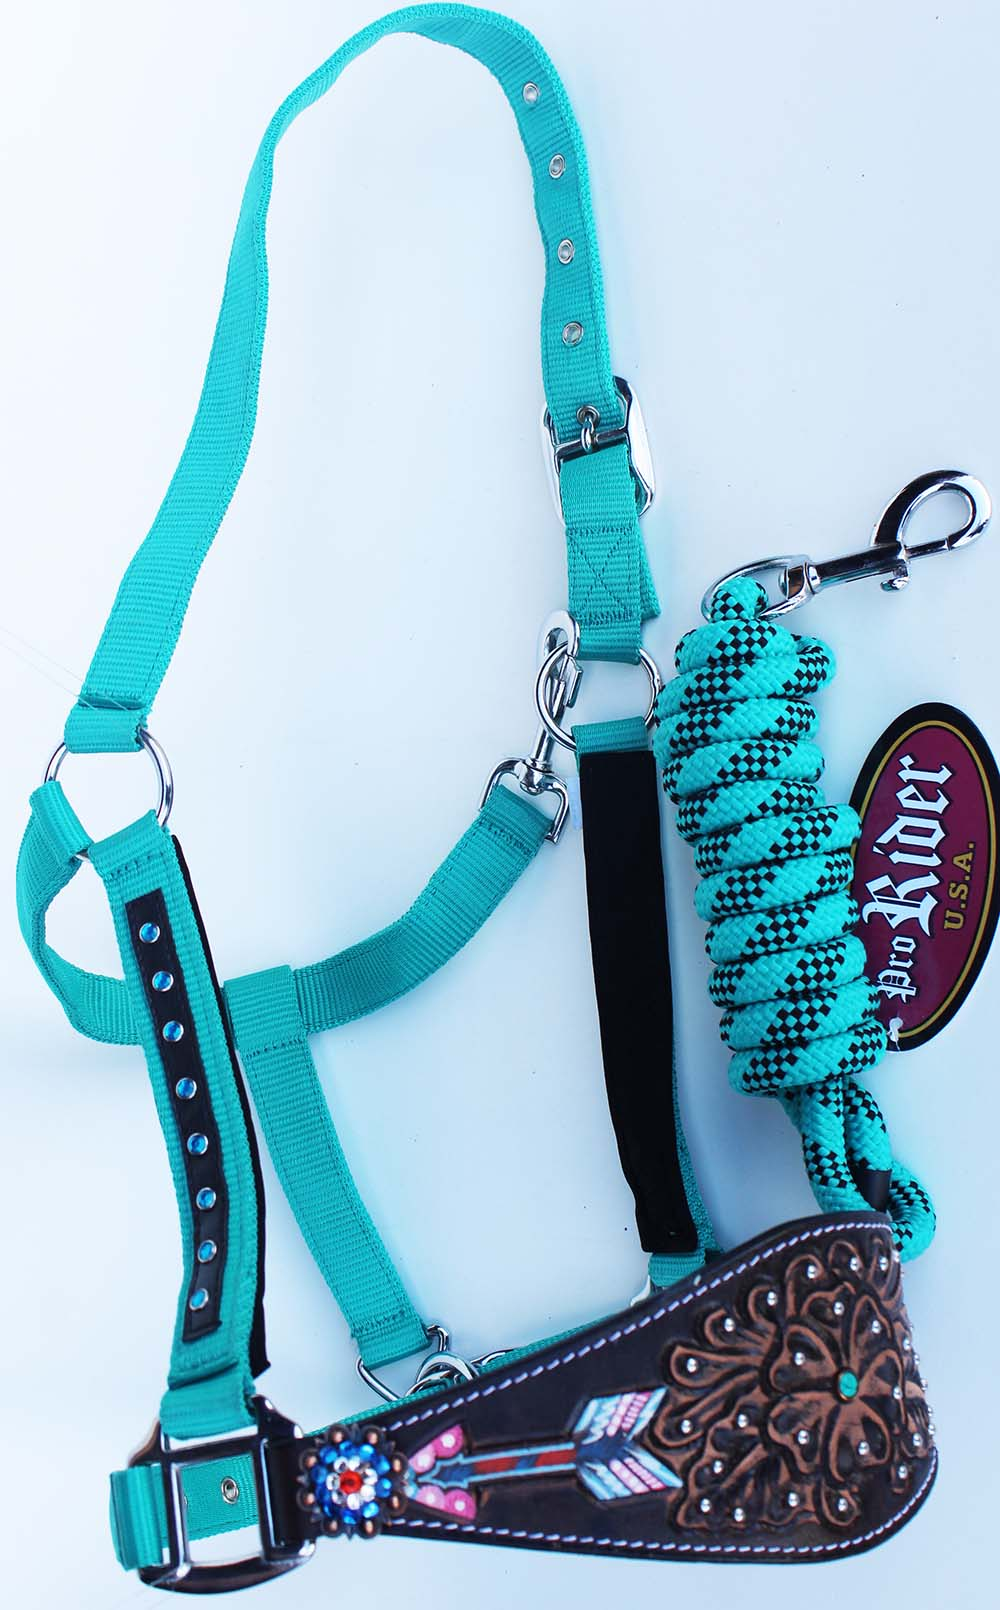 Horse Noseband Tack Bronc Leather HALTER Tiedown Lead Rope Turquoise 280M80236